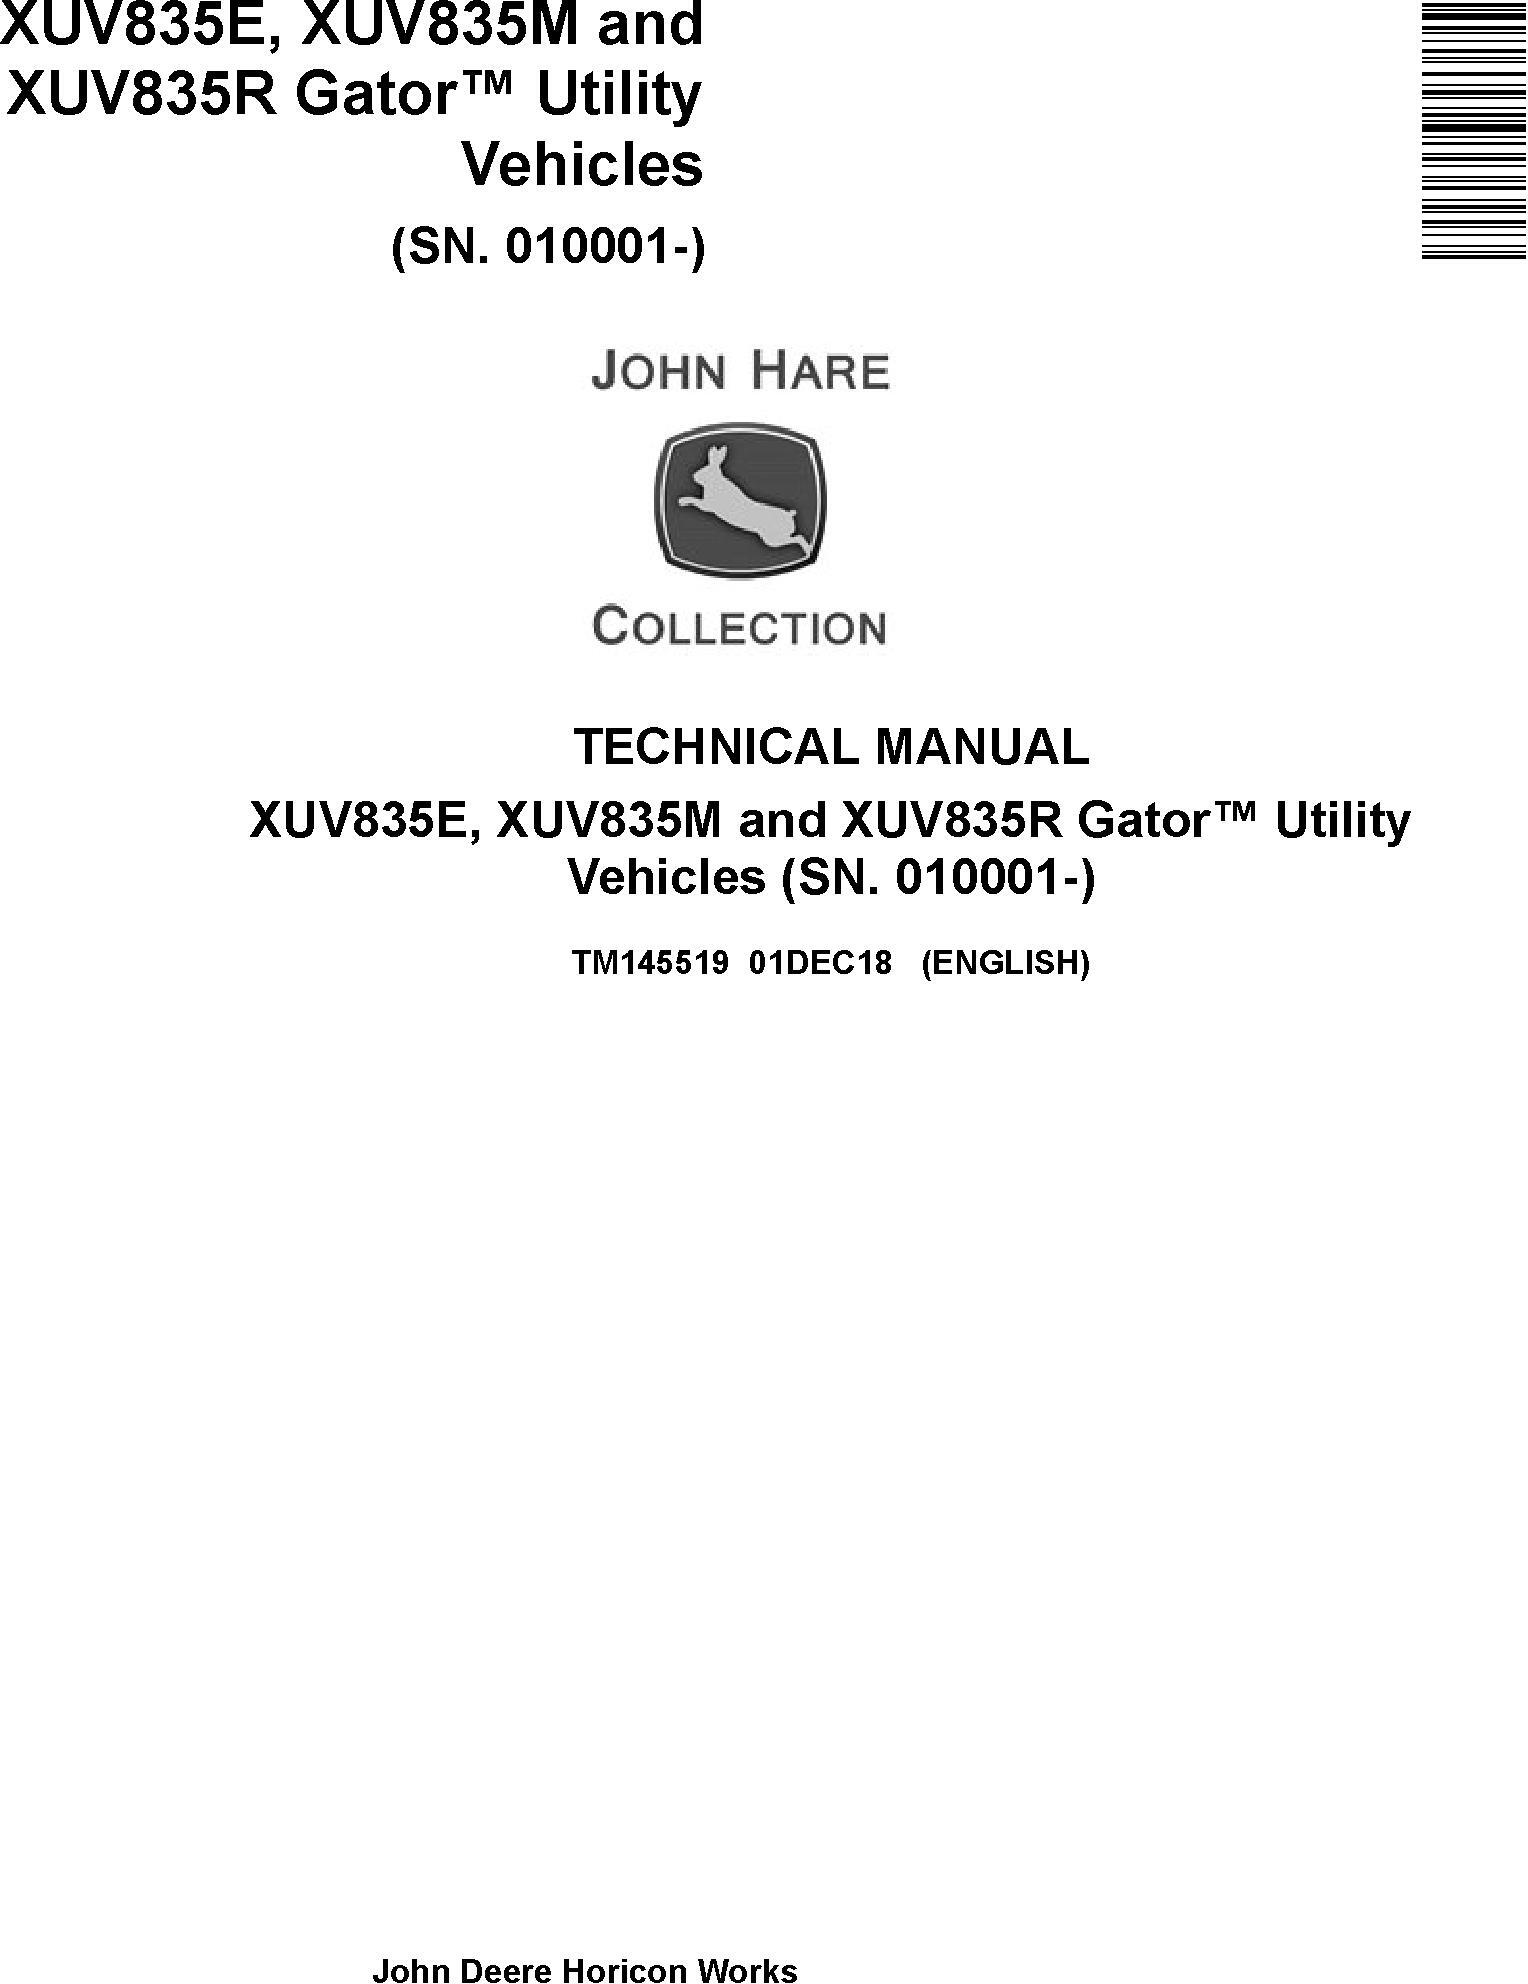 John Deere XUV835E, XUV835M, XUV835R Gator Utility Vehicles (SN.010001-) Technical Manual (TM145519) - 19294